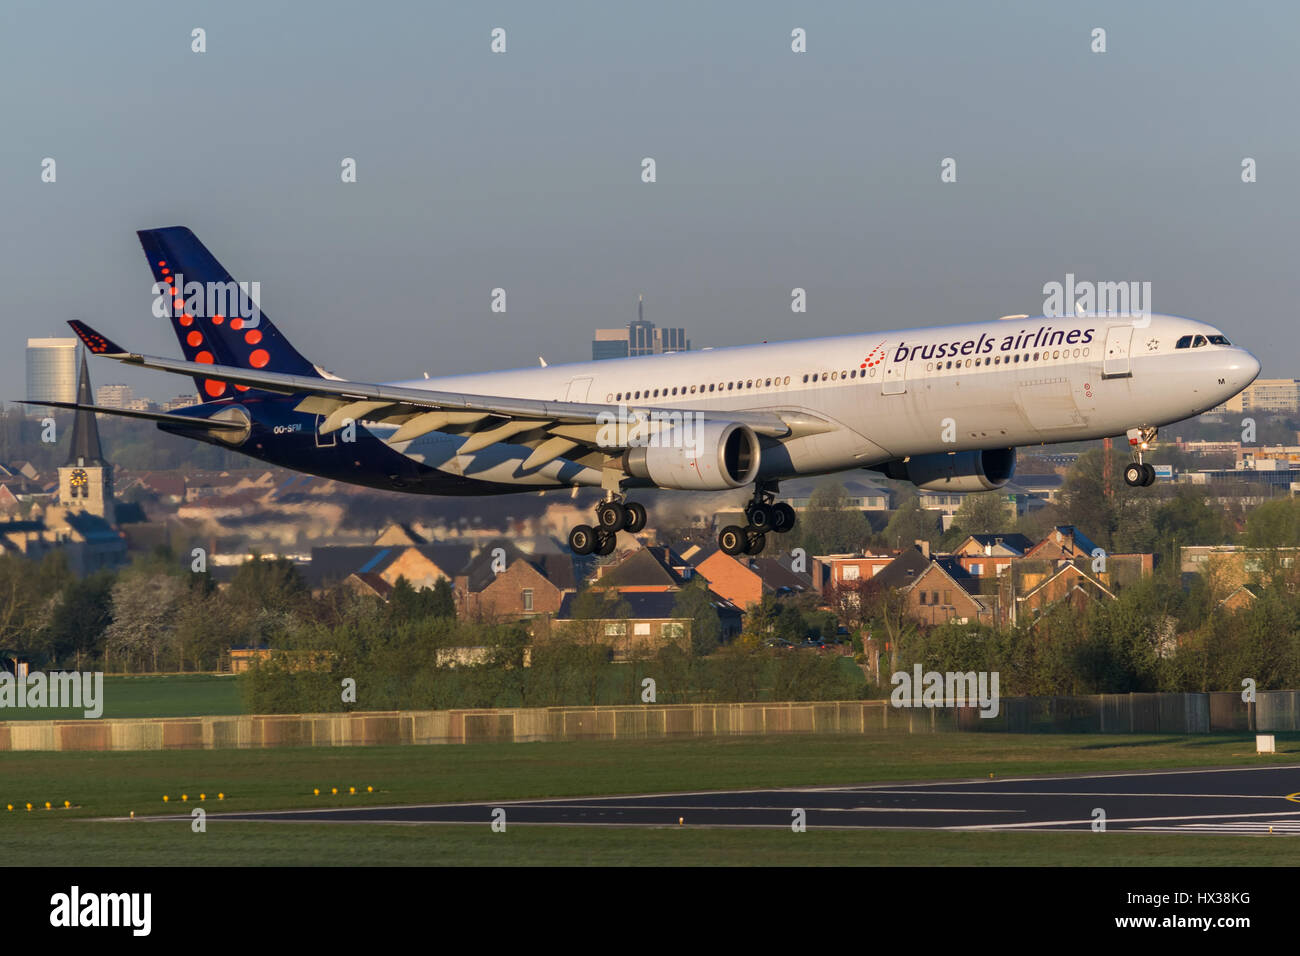 Brussels Airlines Airbus A333 landing on runway 01 at Brussels Airport. - Stock Image